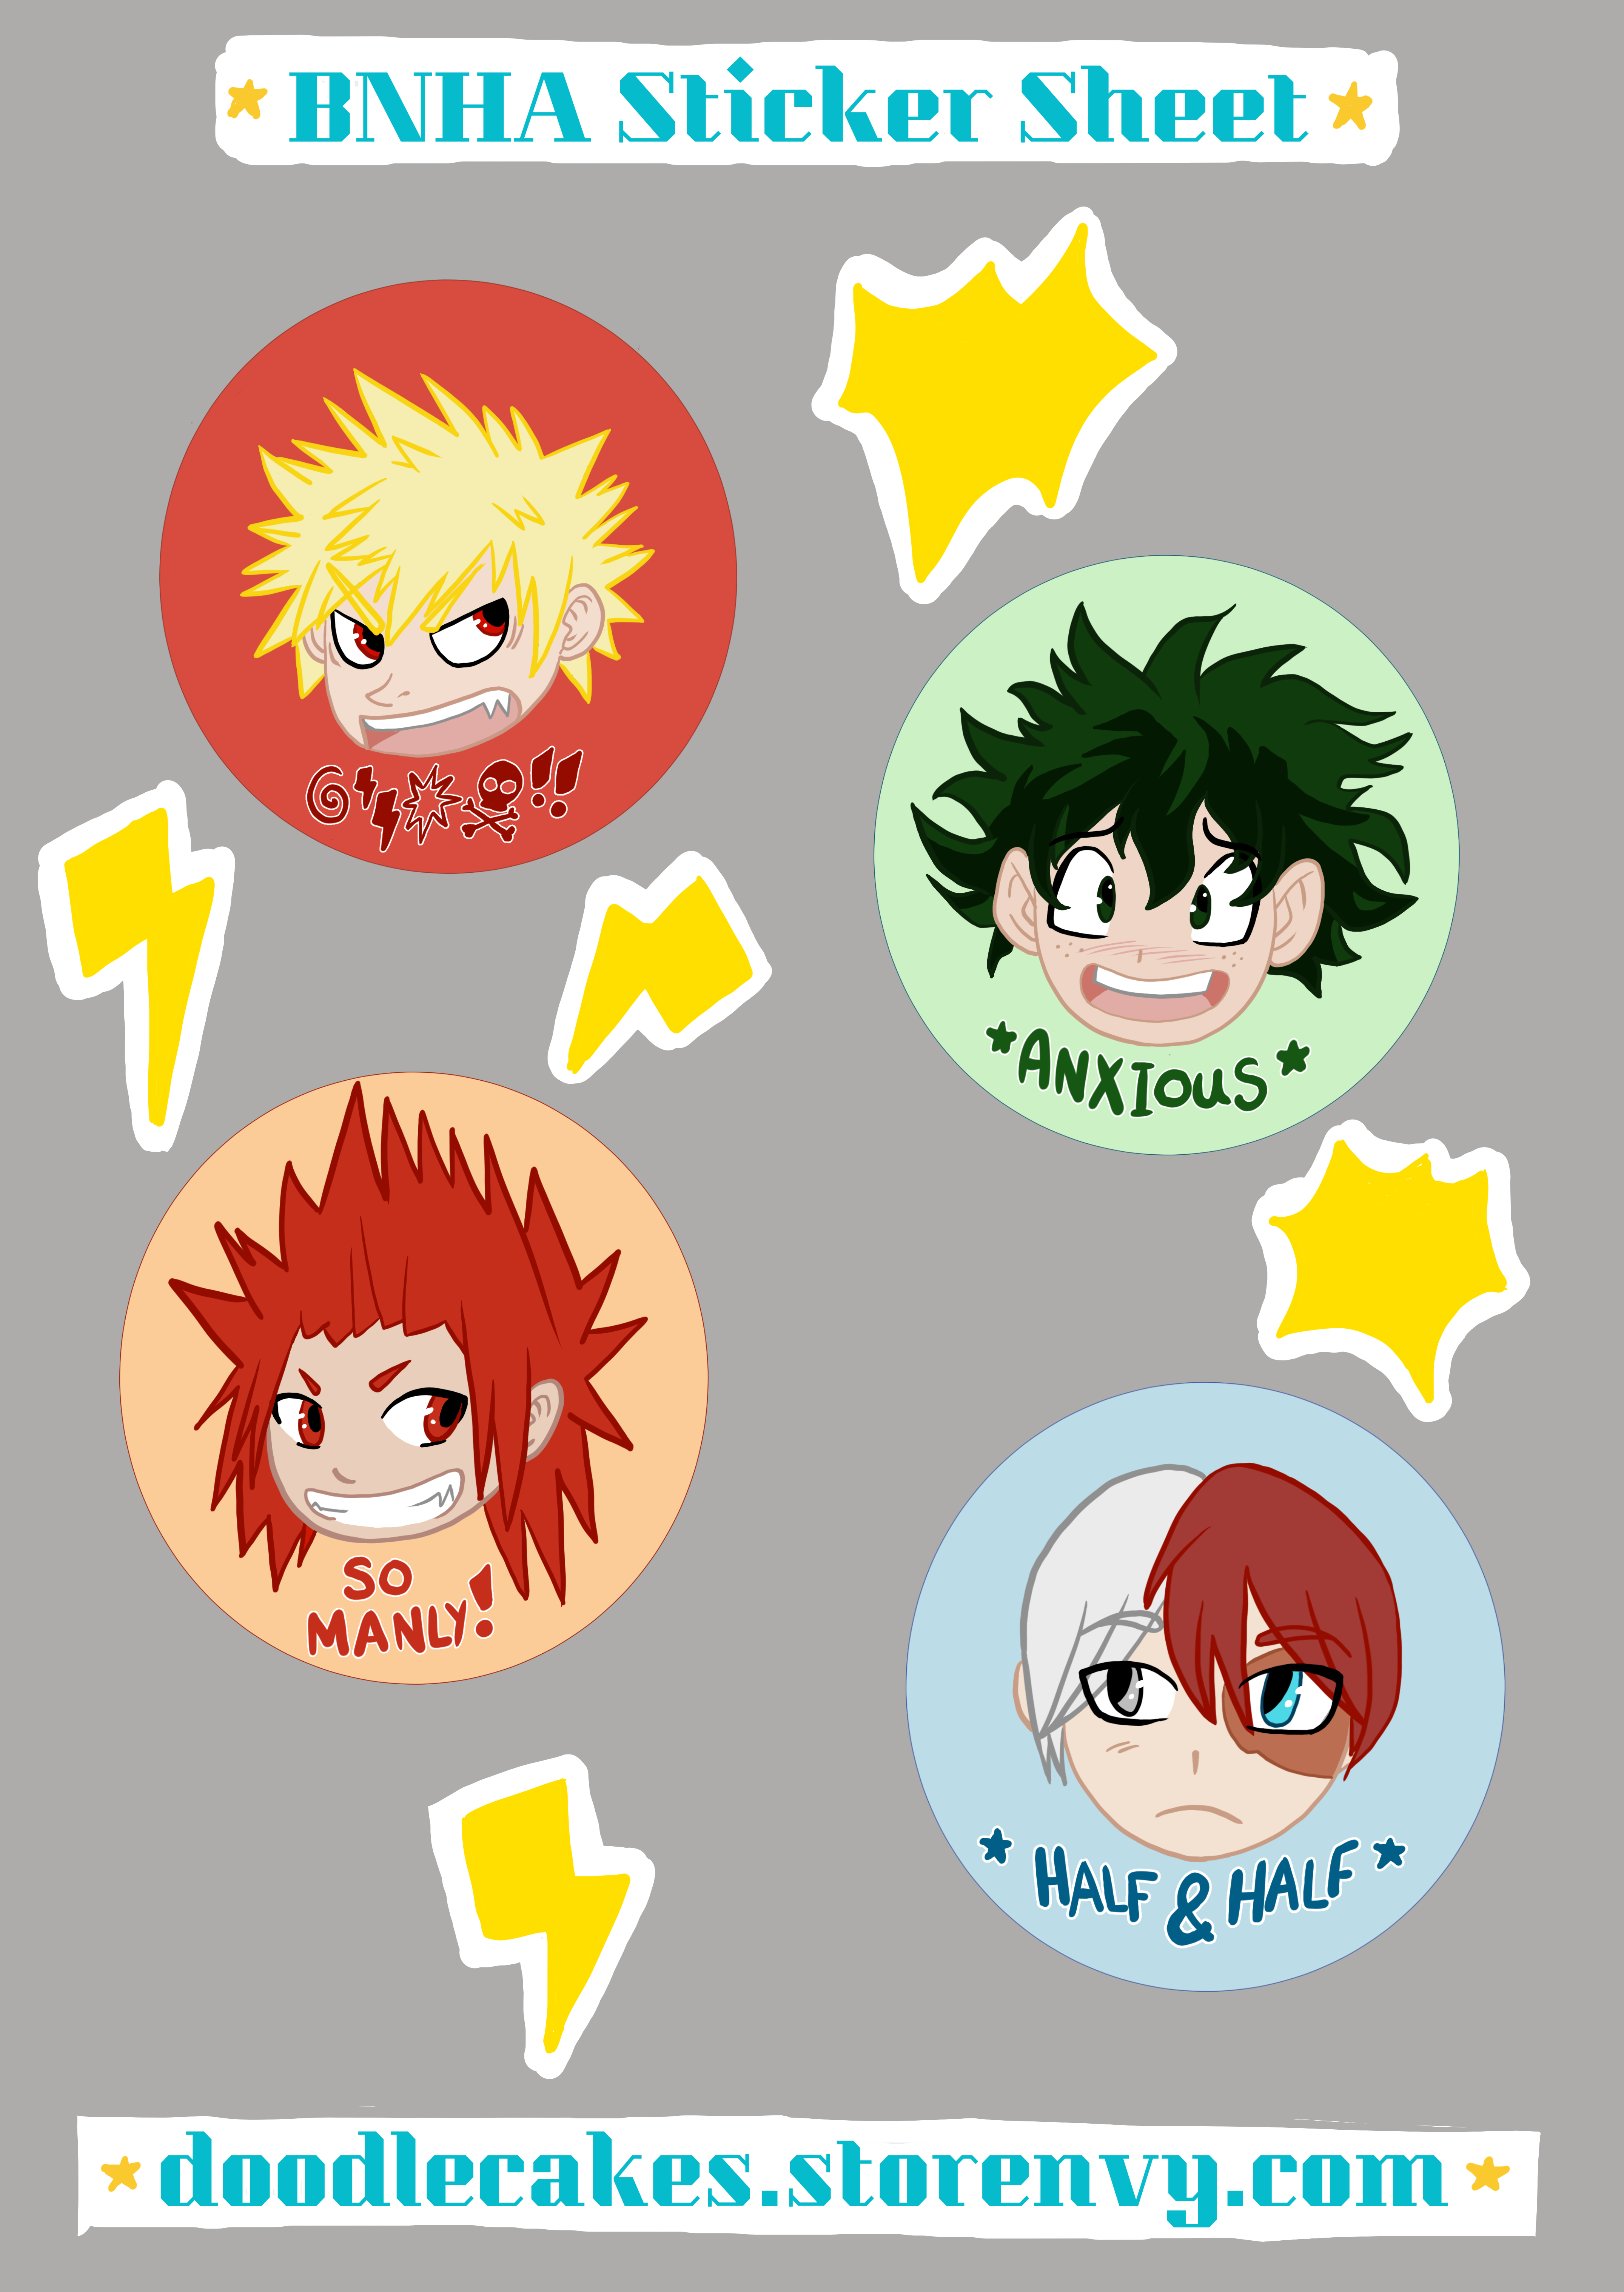 graphic about Printable Vinyl Stickers known as BNHA Vinyl Sticker Sheet